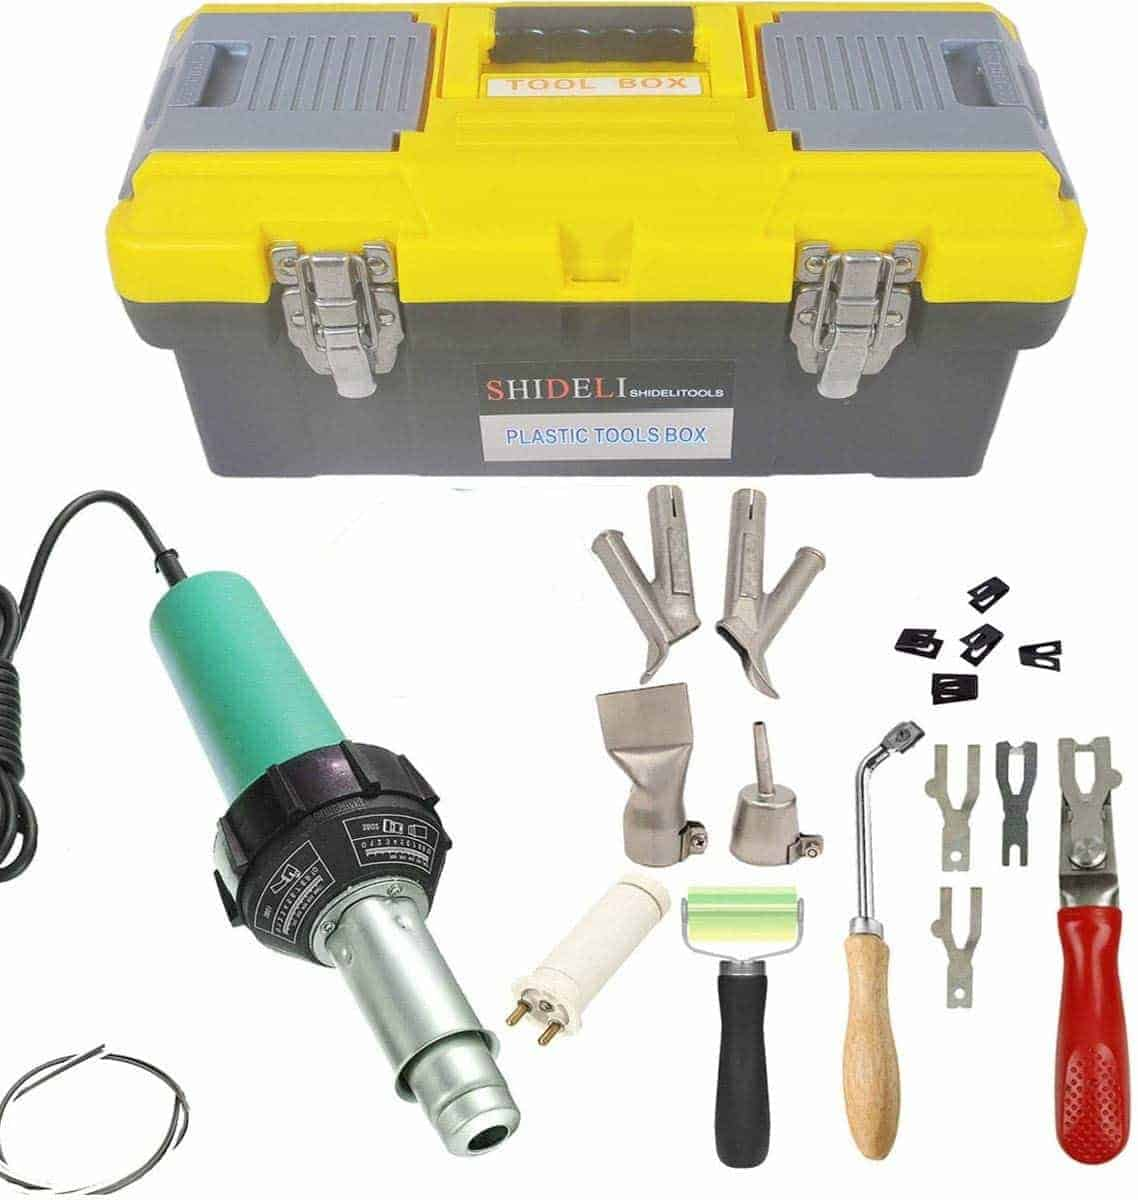 Go2home 1600W plastic Welder kit